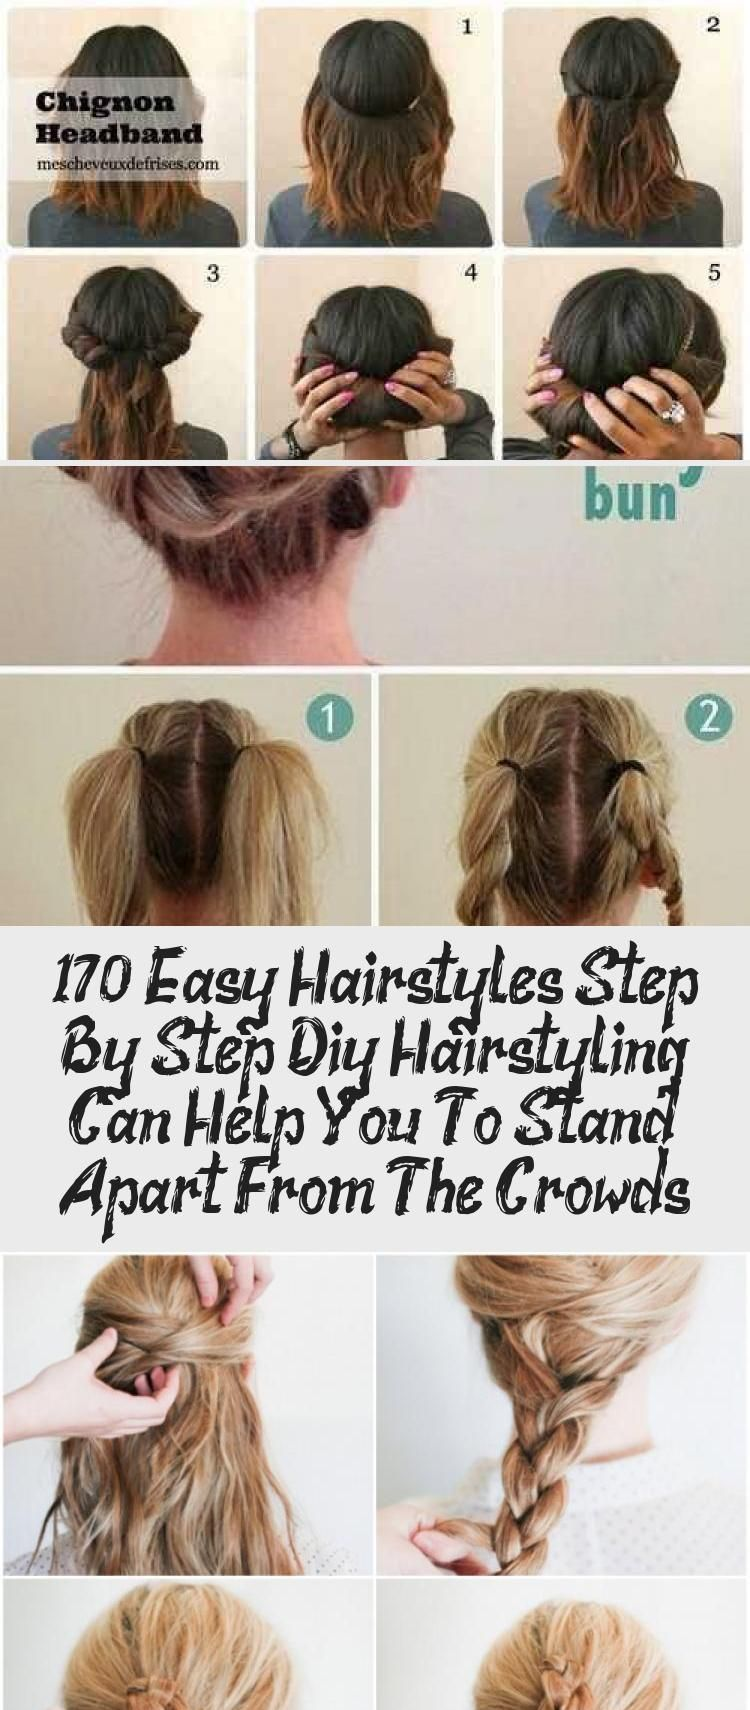 170 Easy Hairstyles Step By Step Diy Hair Styling Can Help You To Stand Apart From The Crowds Page 83 My In 2020 Easy Hairstyles Diy Hairstyles Easy Diy Hairstyles